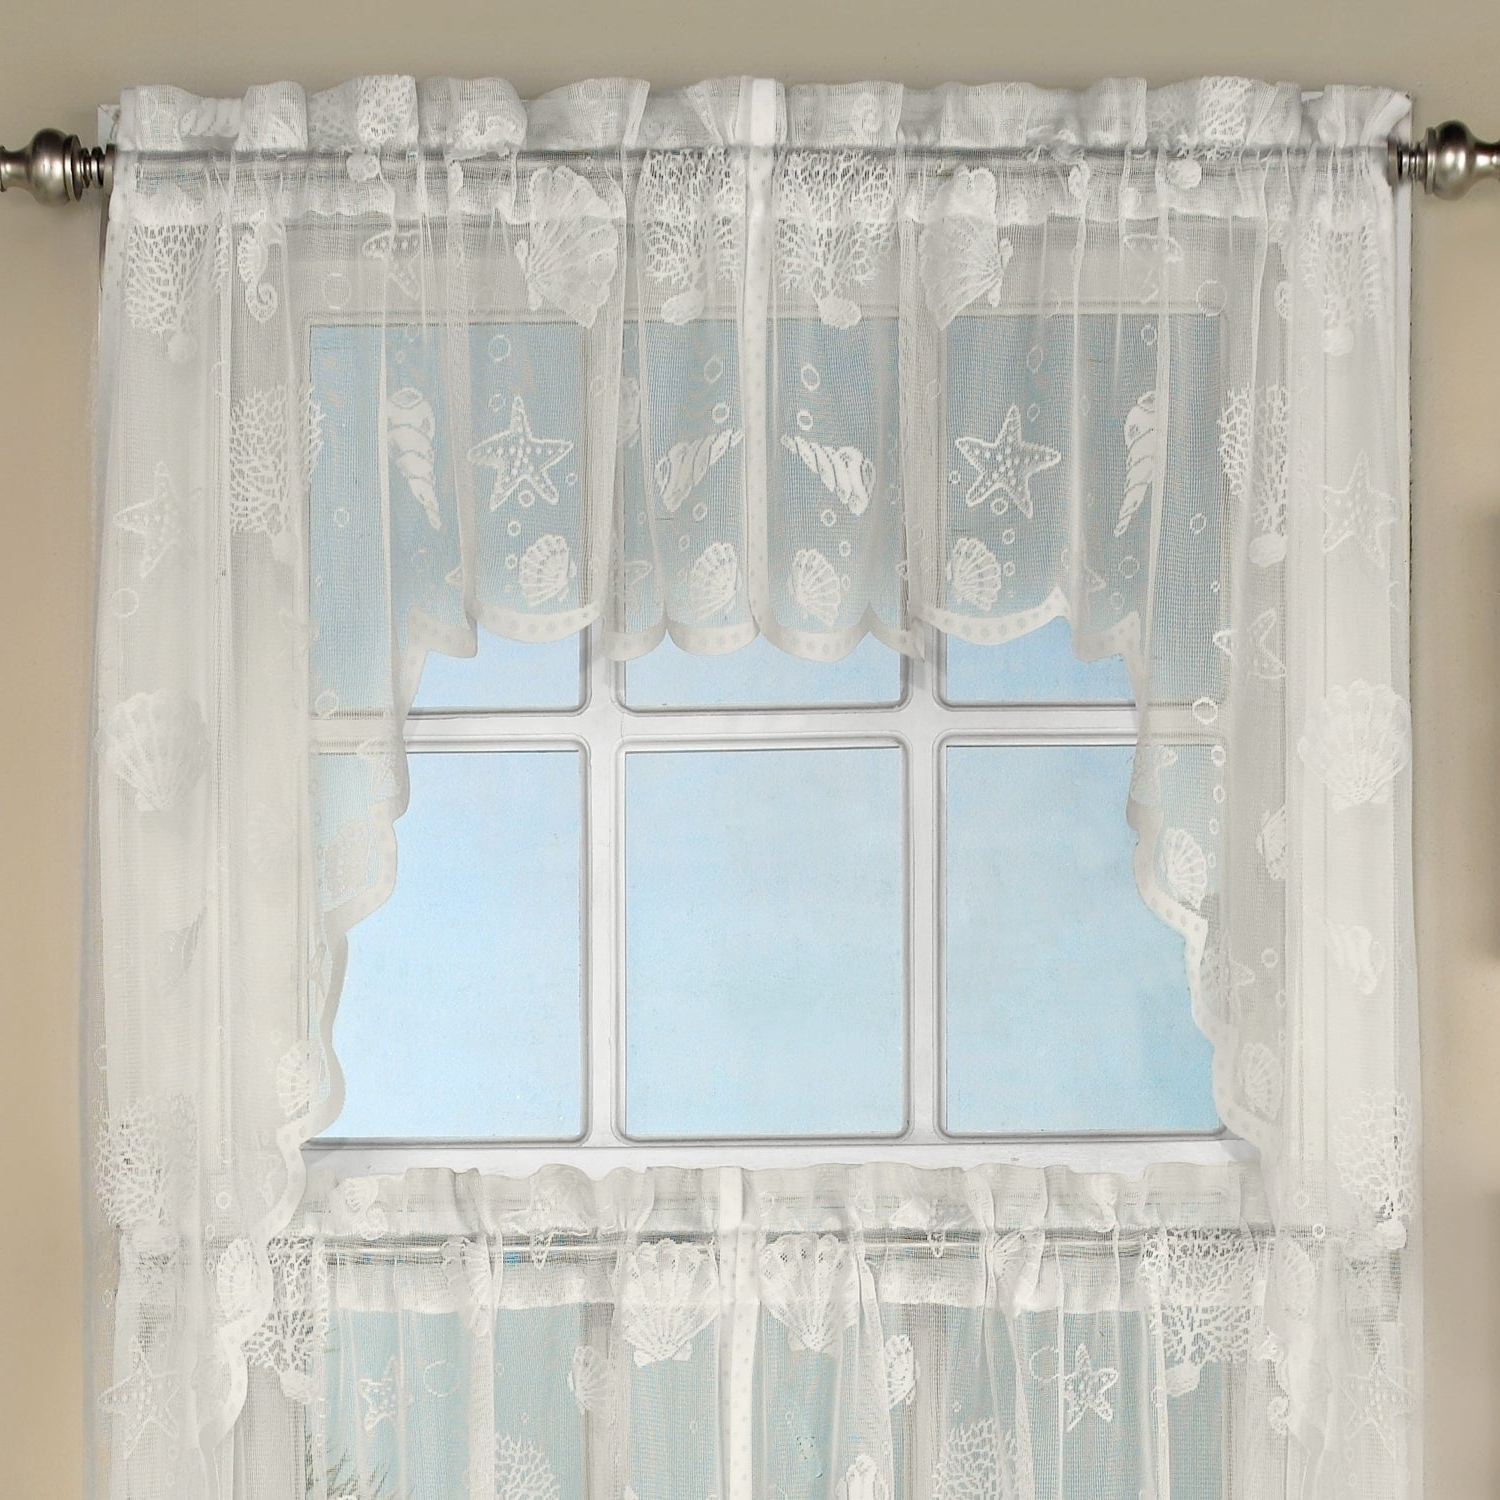 Popular White Knit Lace Bird Motif Window Curtain Tiers In Marine Life Motif Knitted Lace Window Curtain Pieces (View 7 of 20)